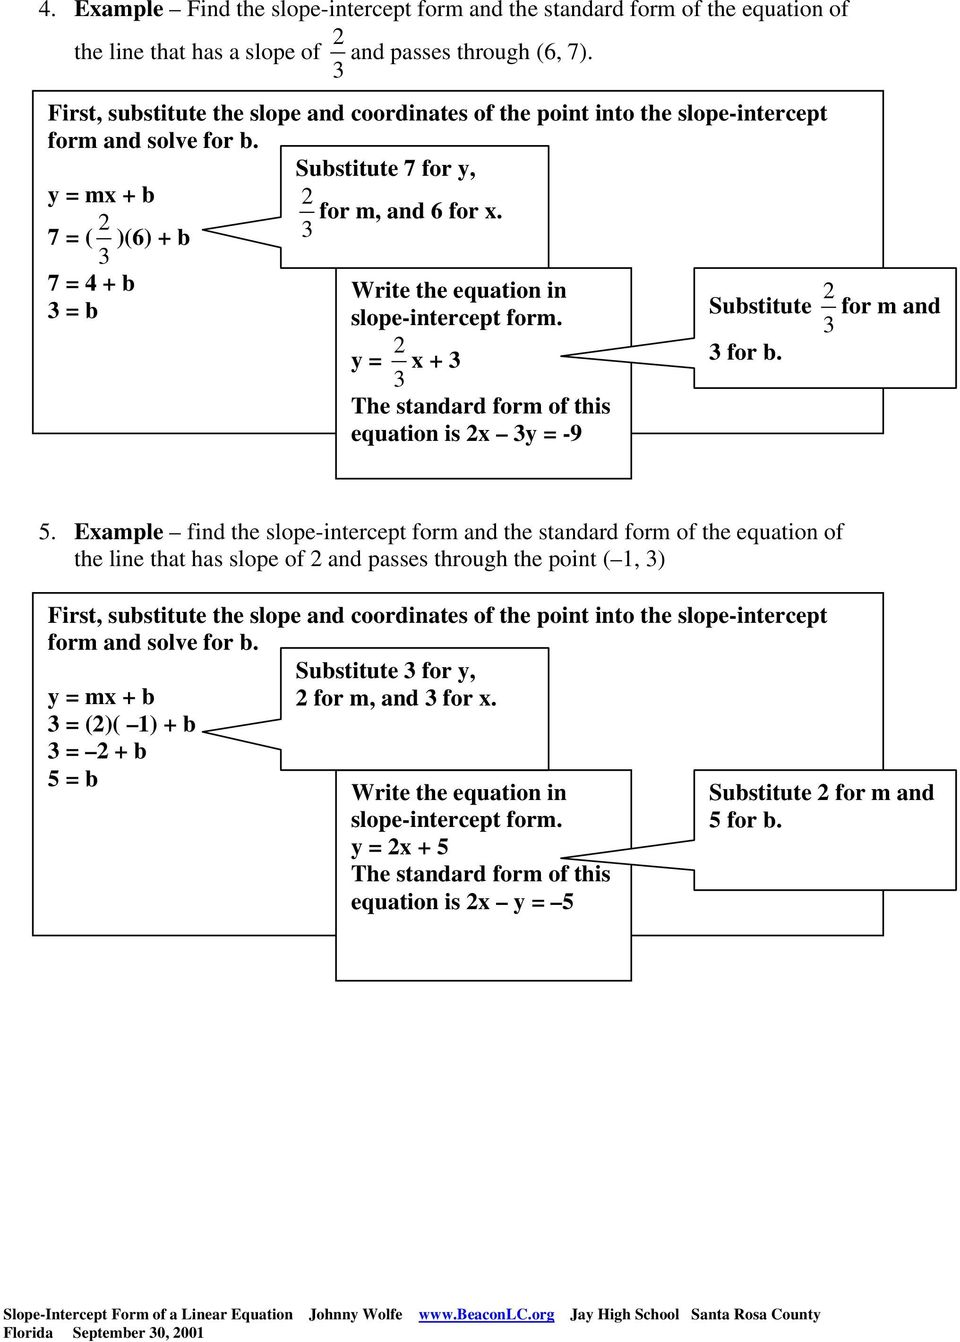 slope-intercept form of a linear equation examples - pdf